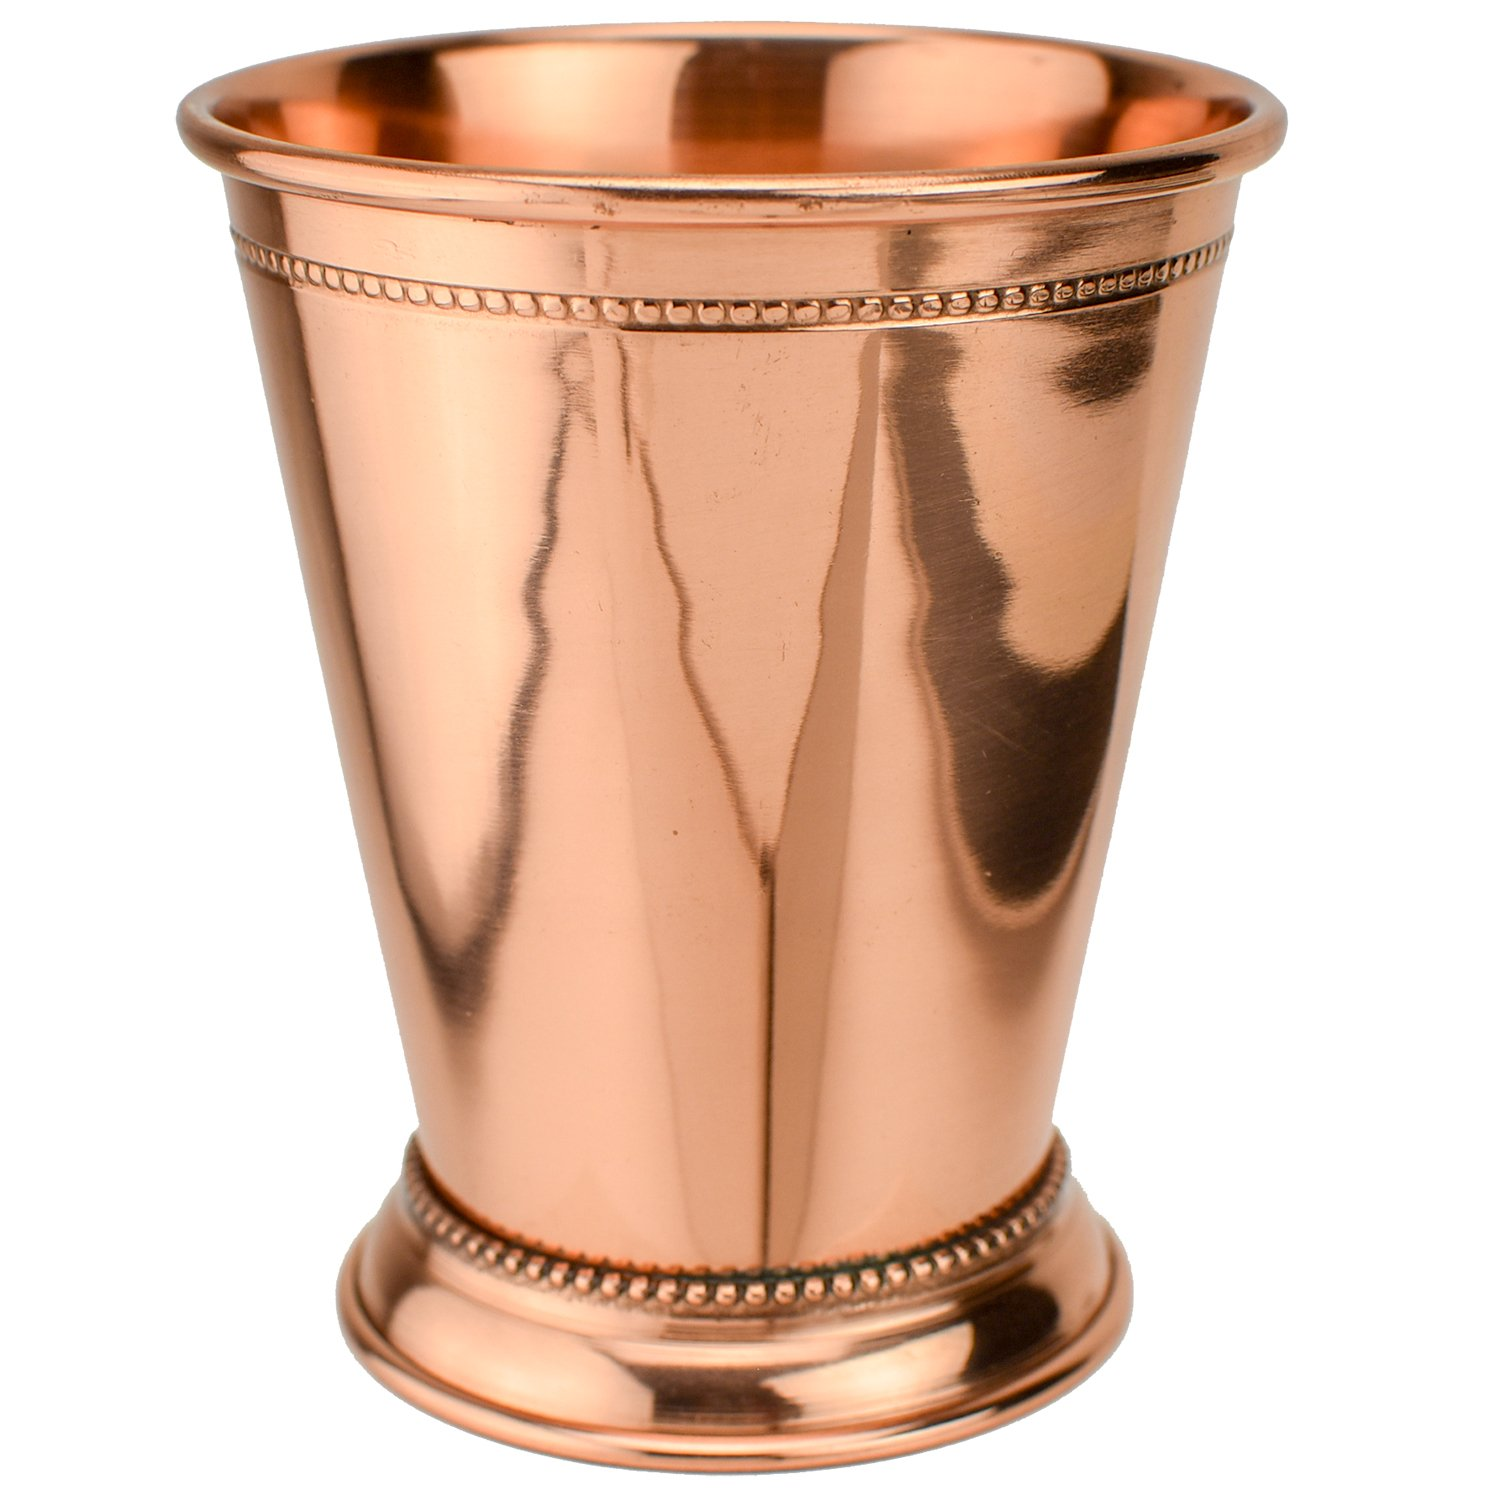 Prince of Scots 100% Pure Copper Mint Julep Cup